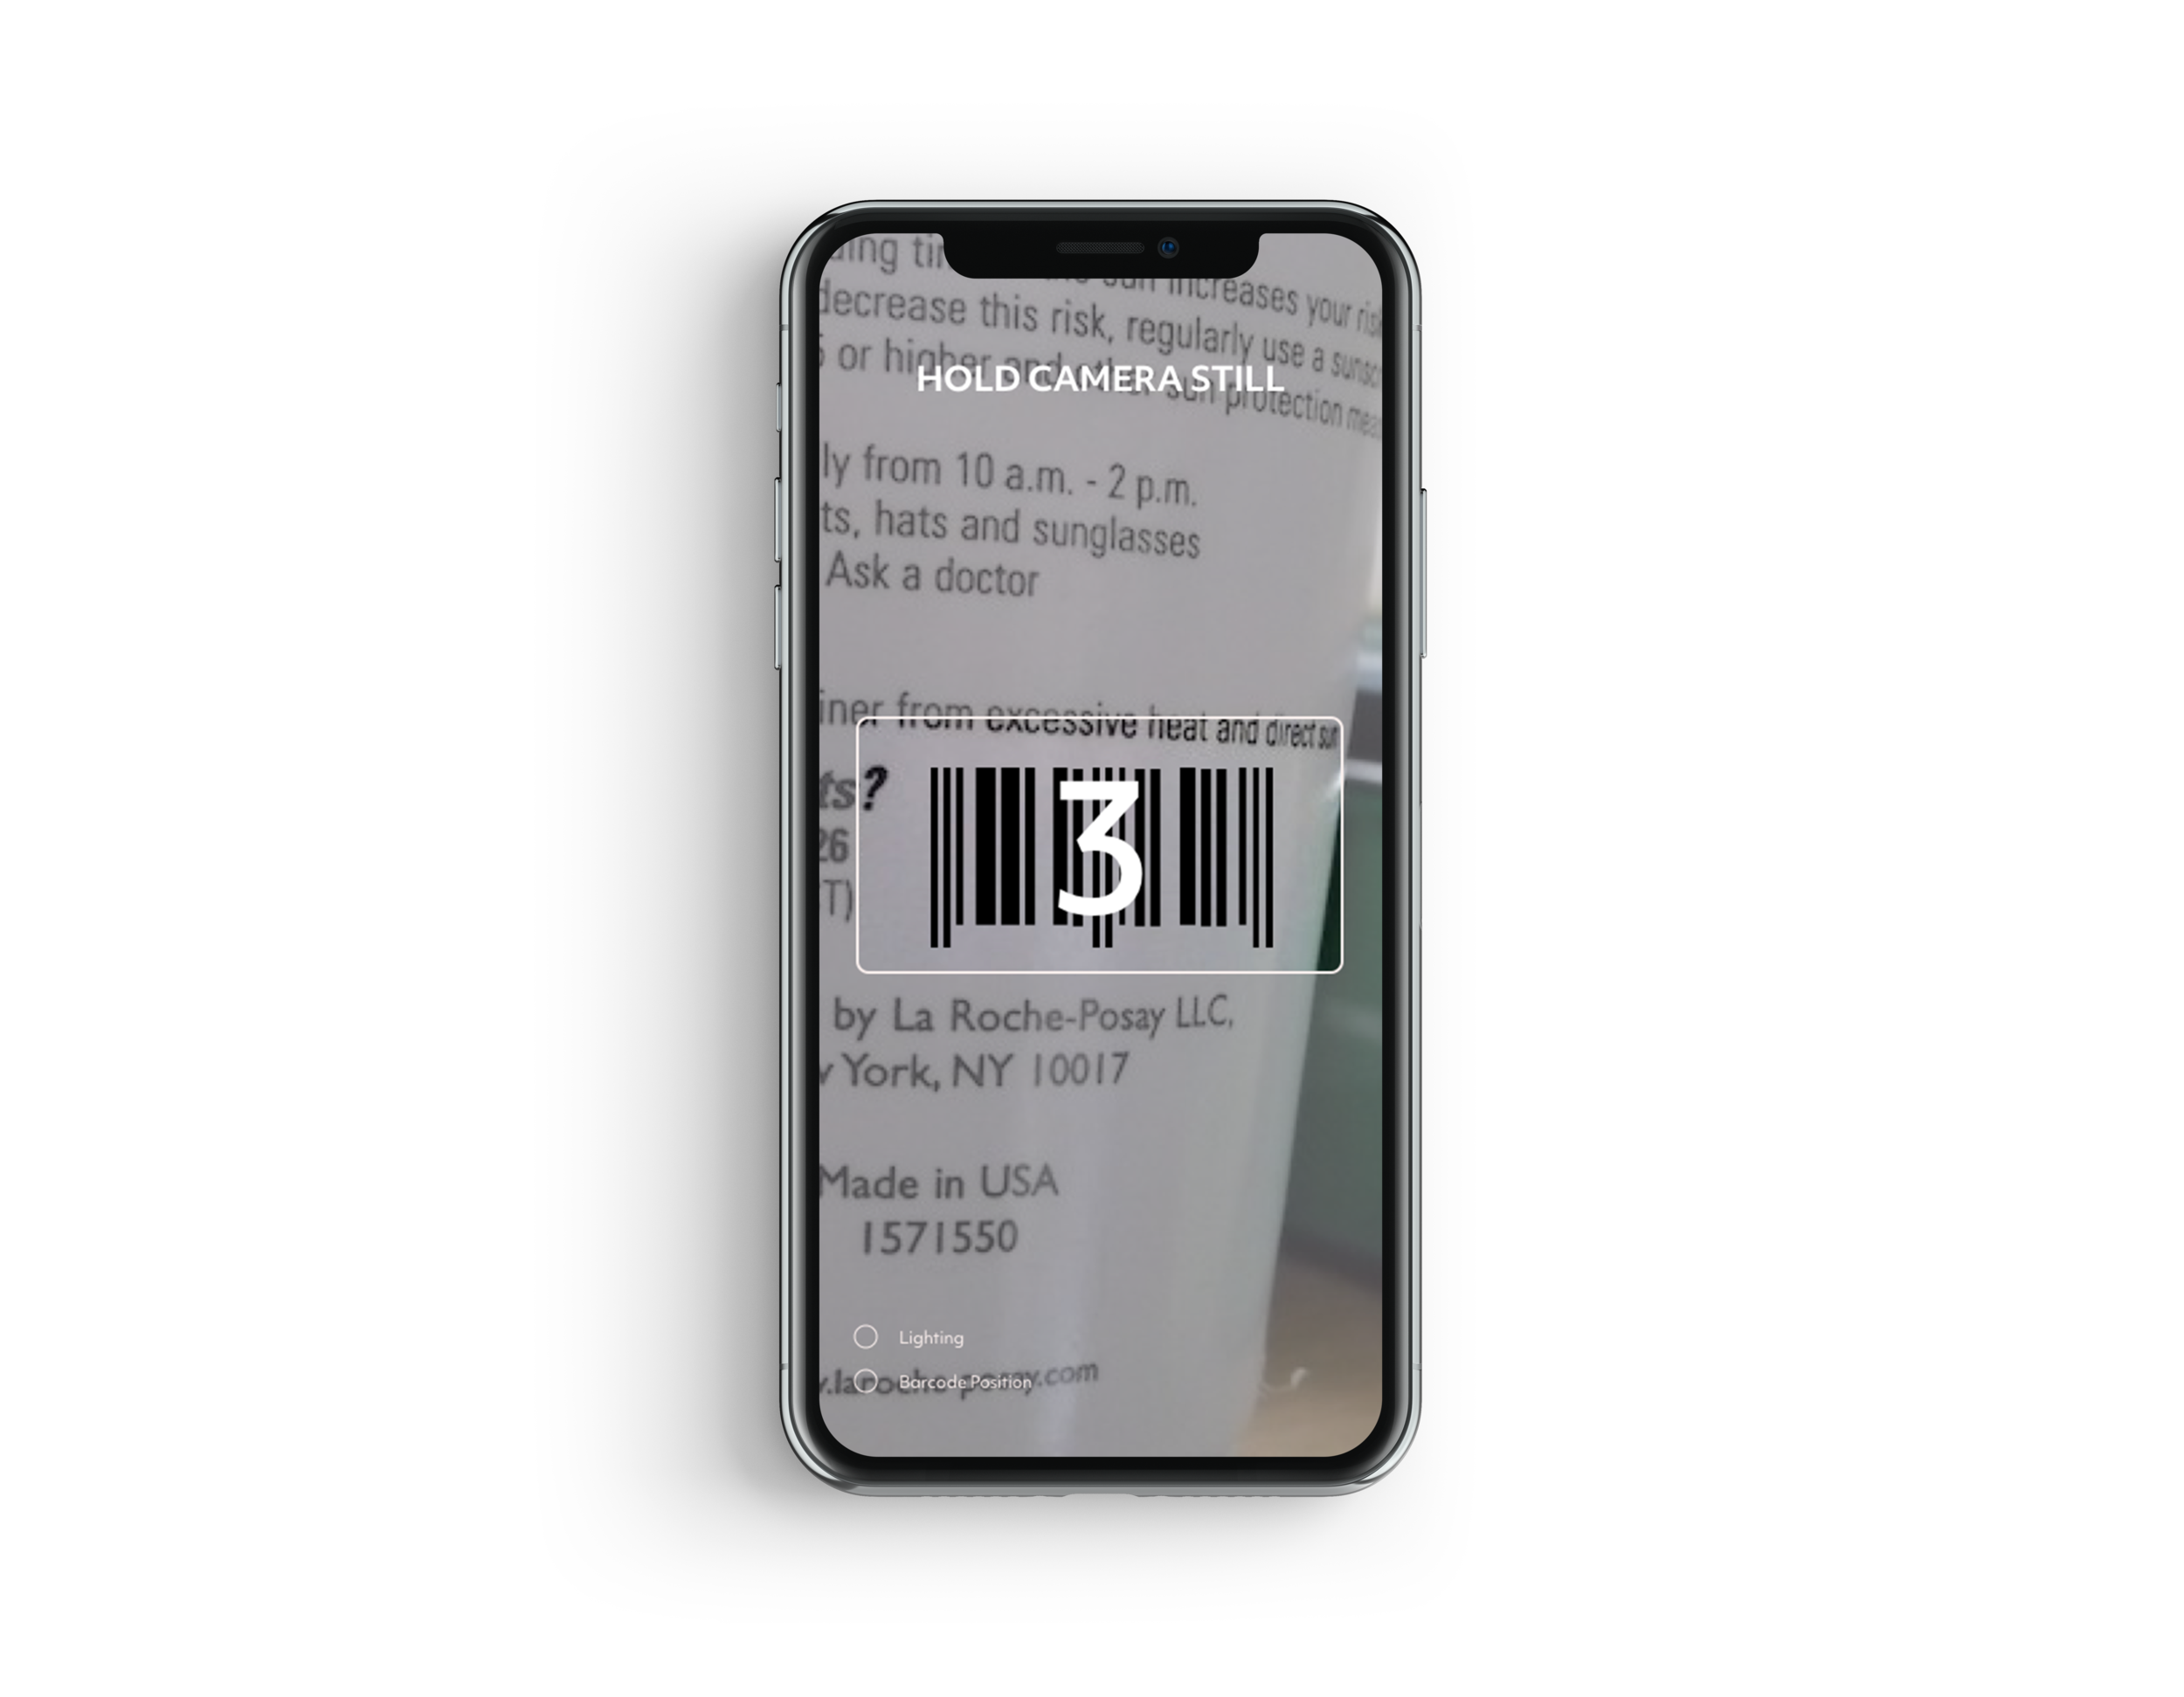 16scan_barcode.png